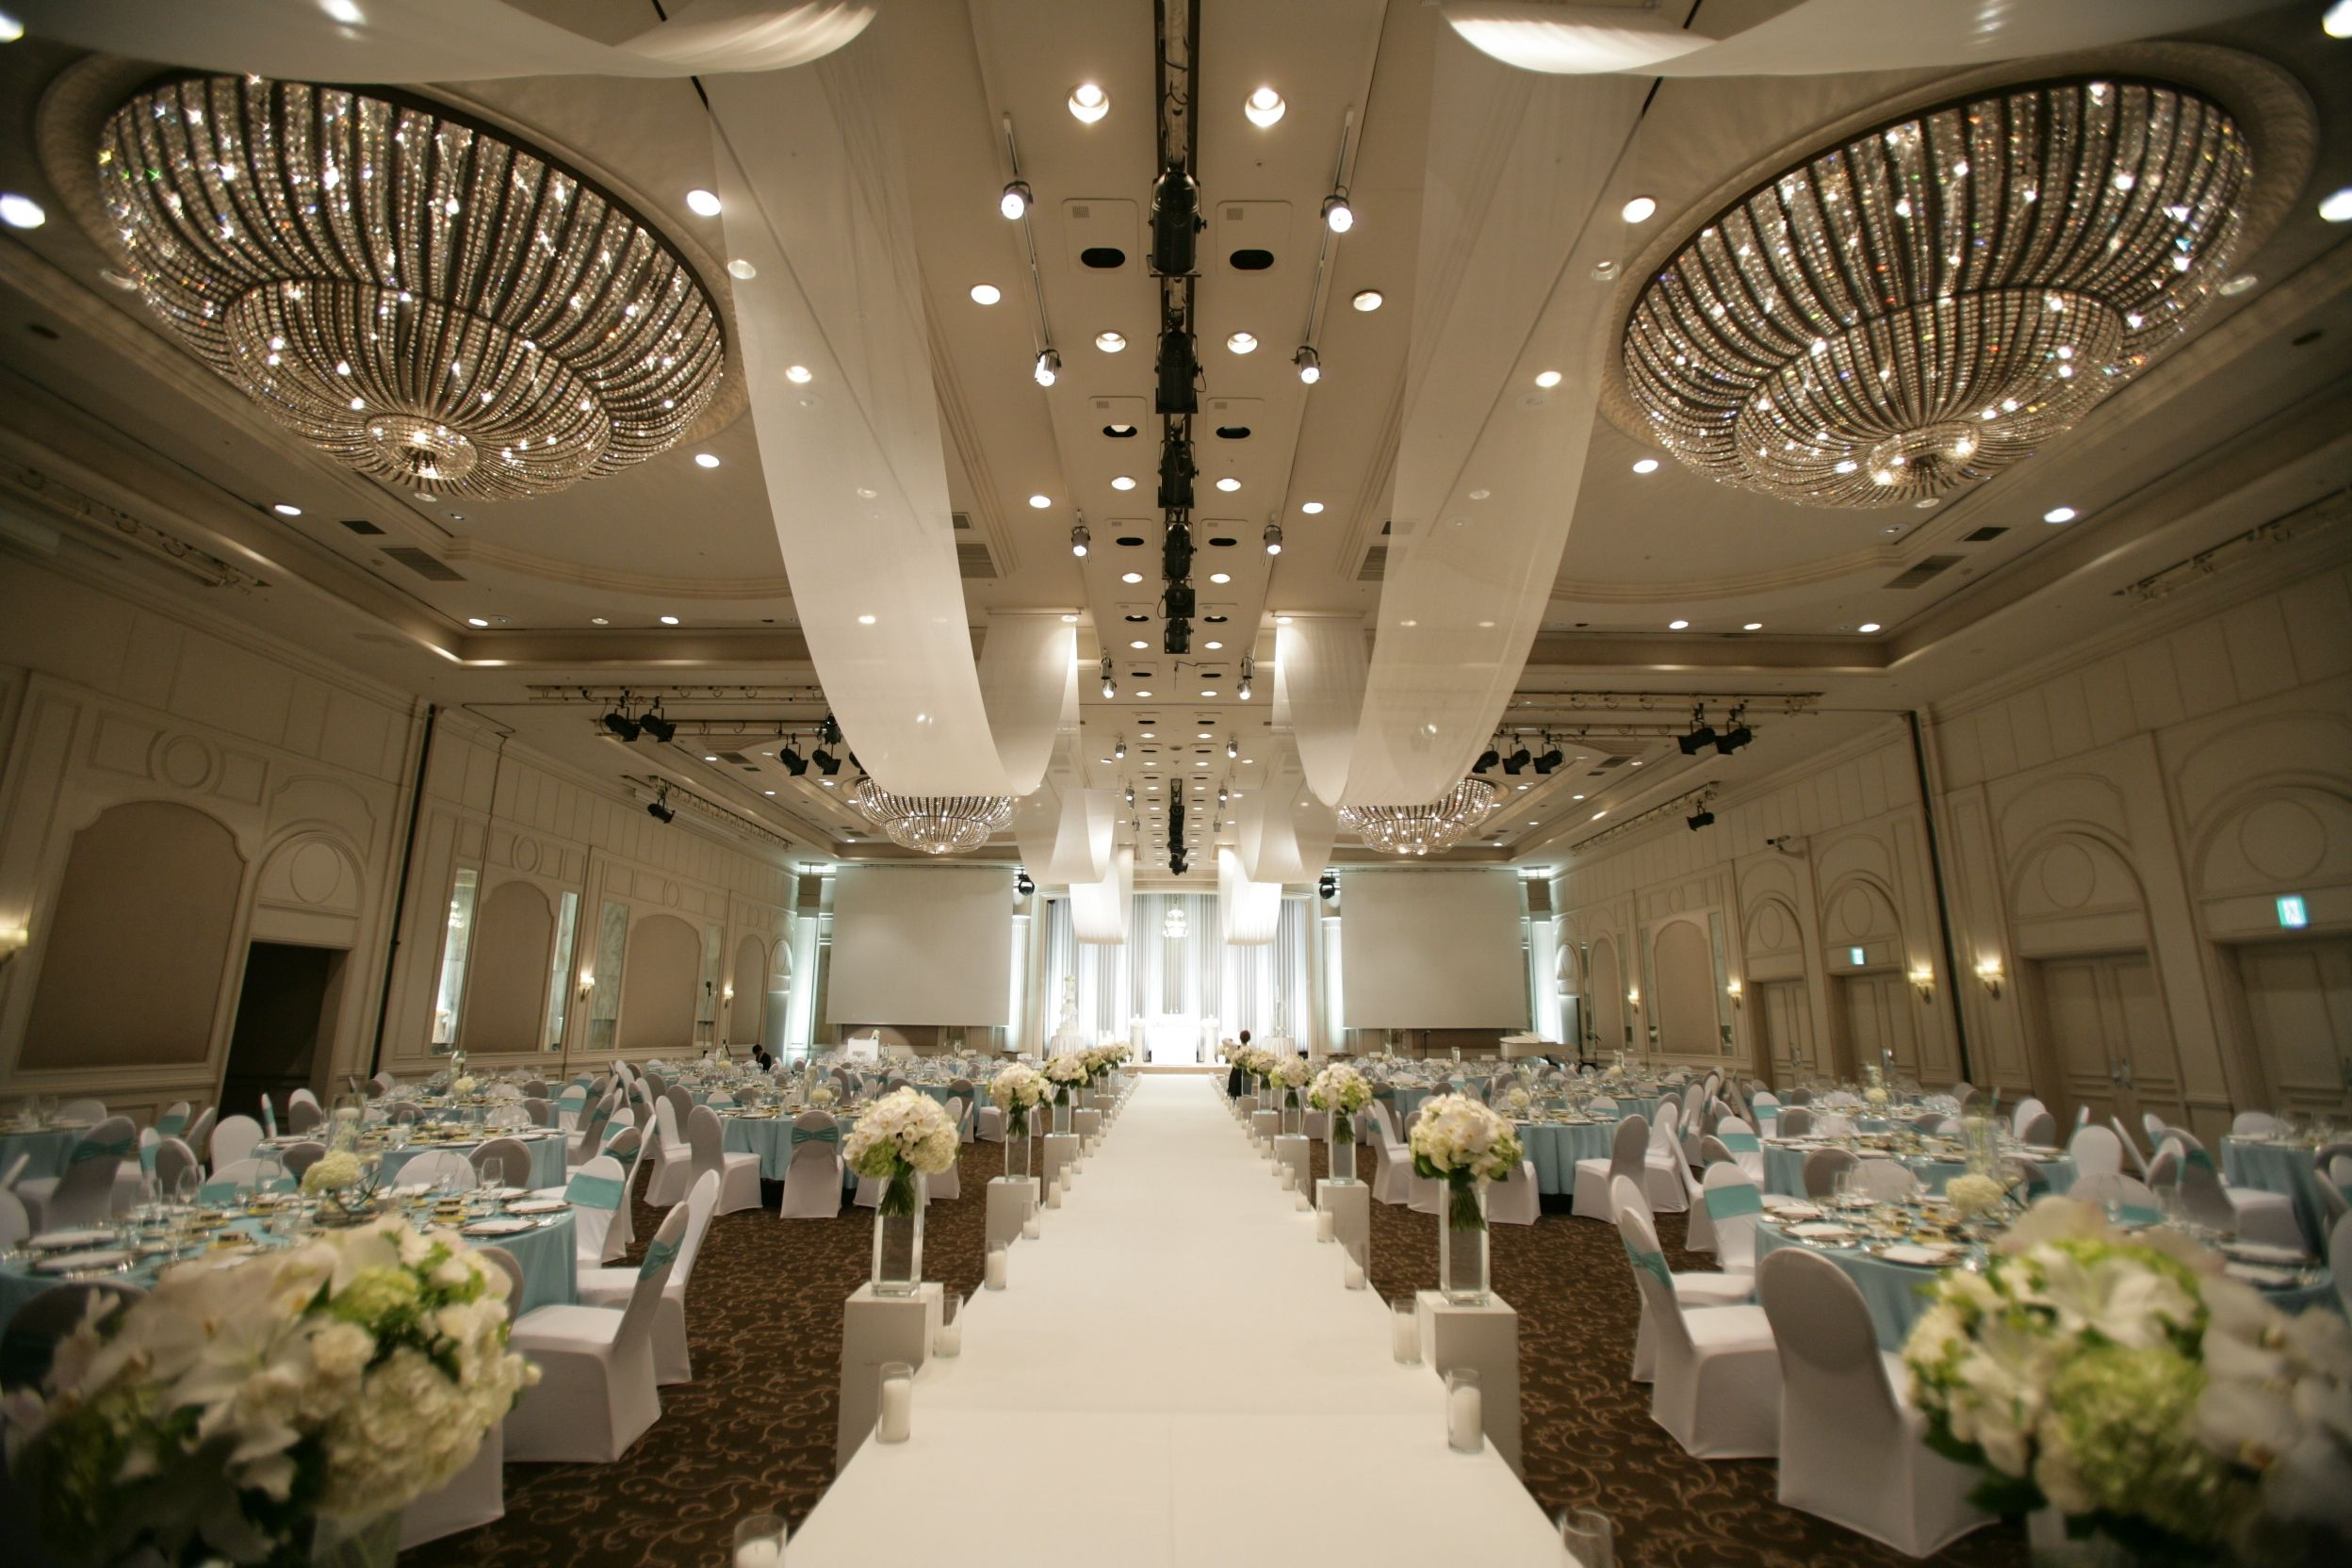 Grand Ballroom Decoration Grandballroom Wedding Pinterest